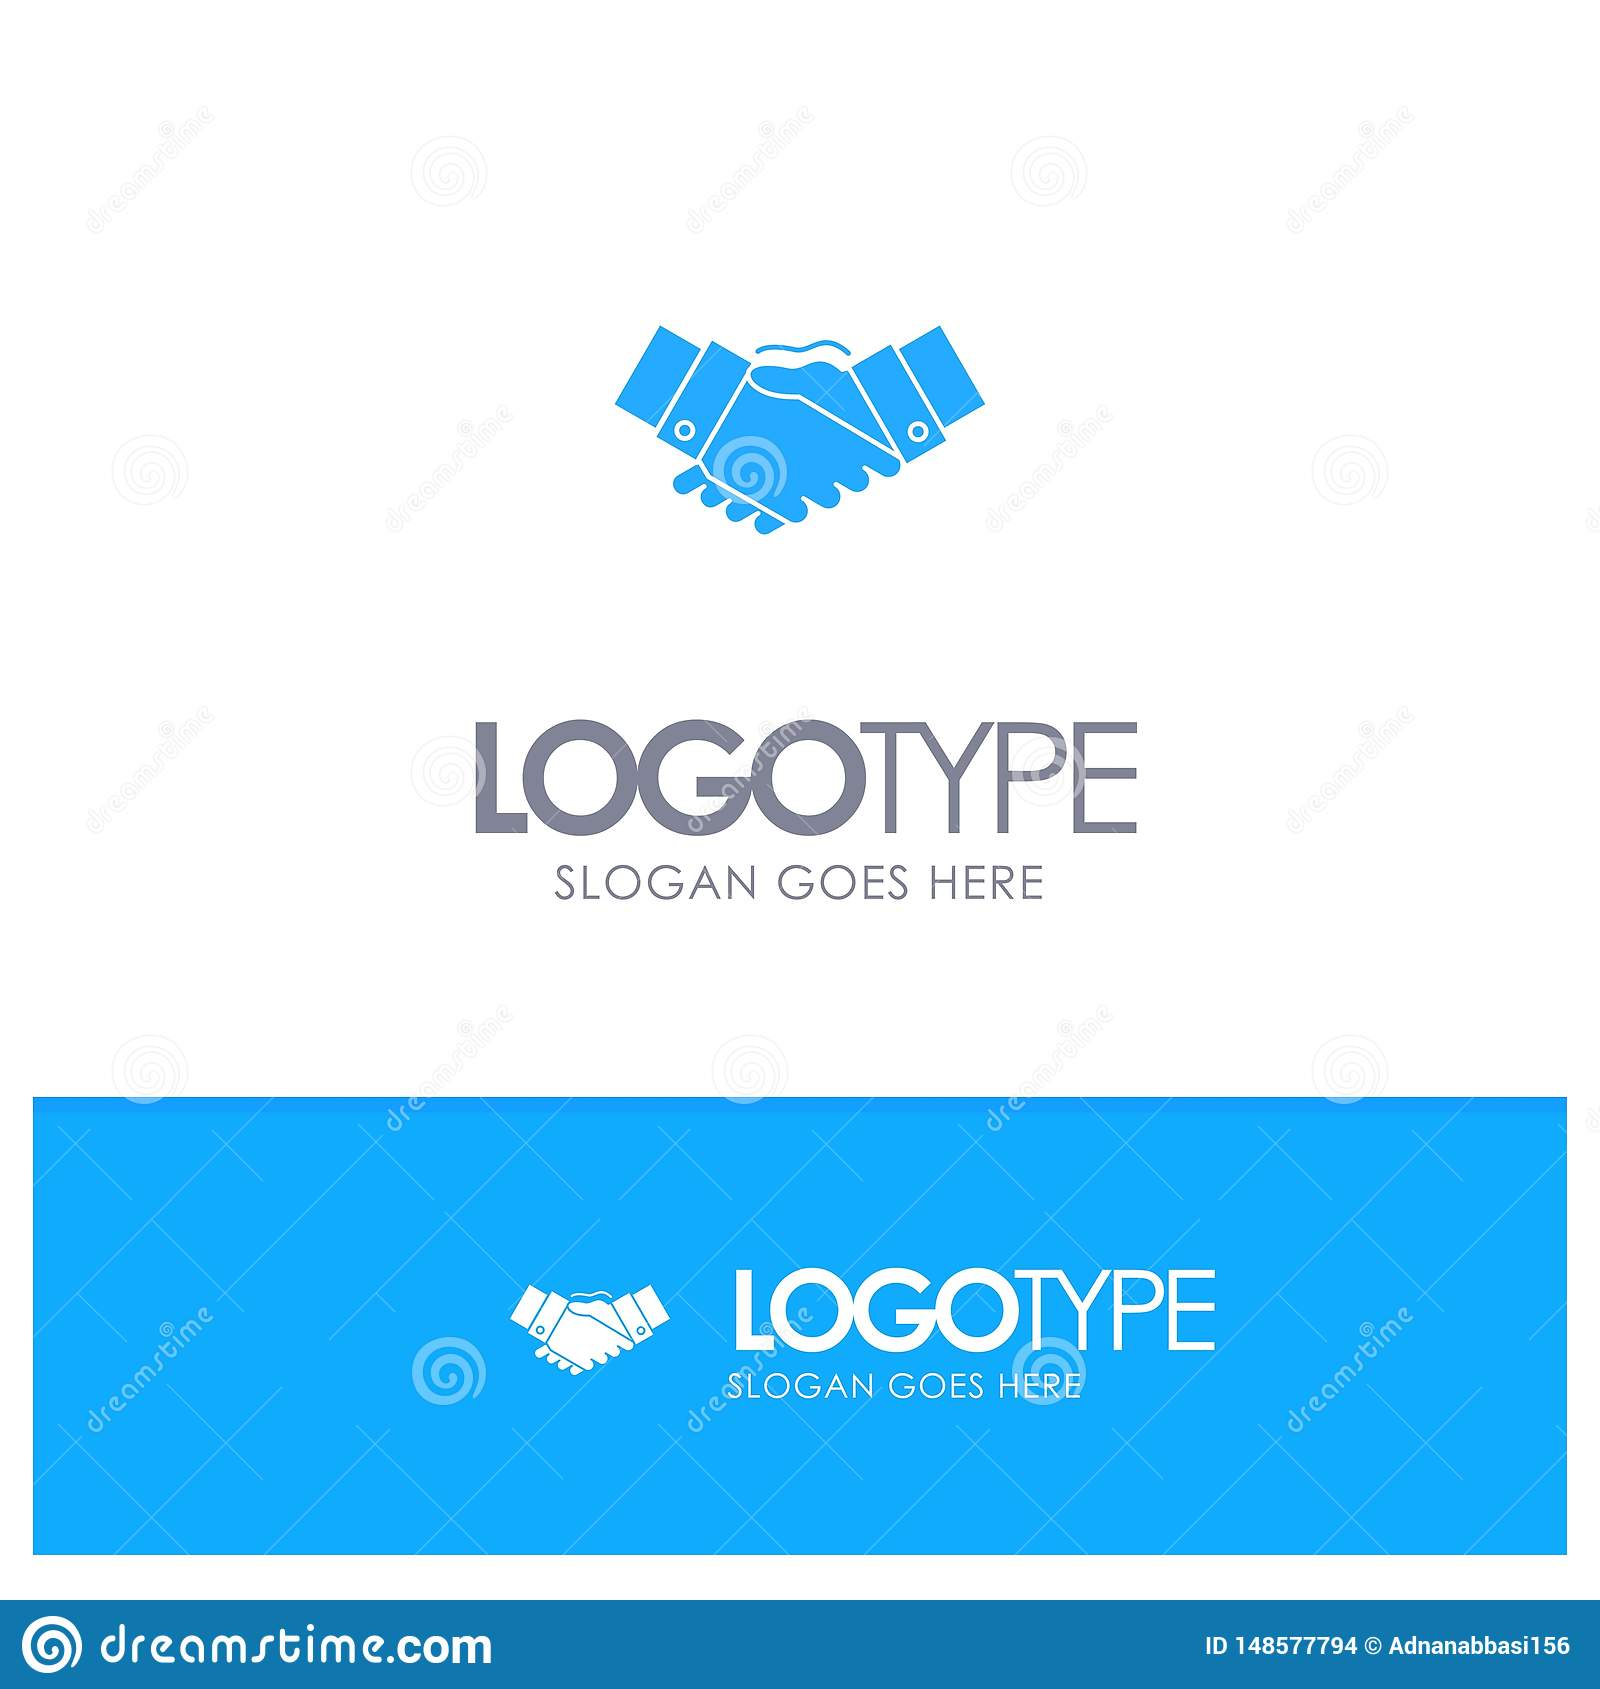 Handshake, Agreement, Business, Hands, Partners, Partnership Blue Solid Logo with place for tagline